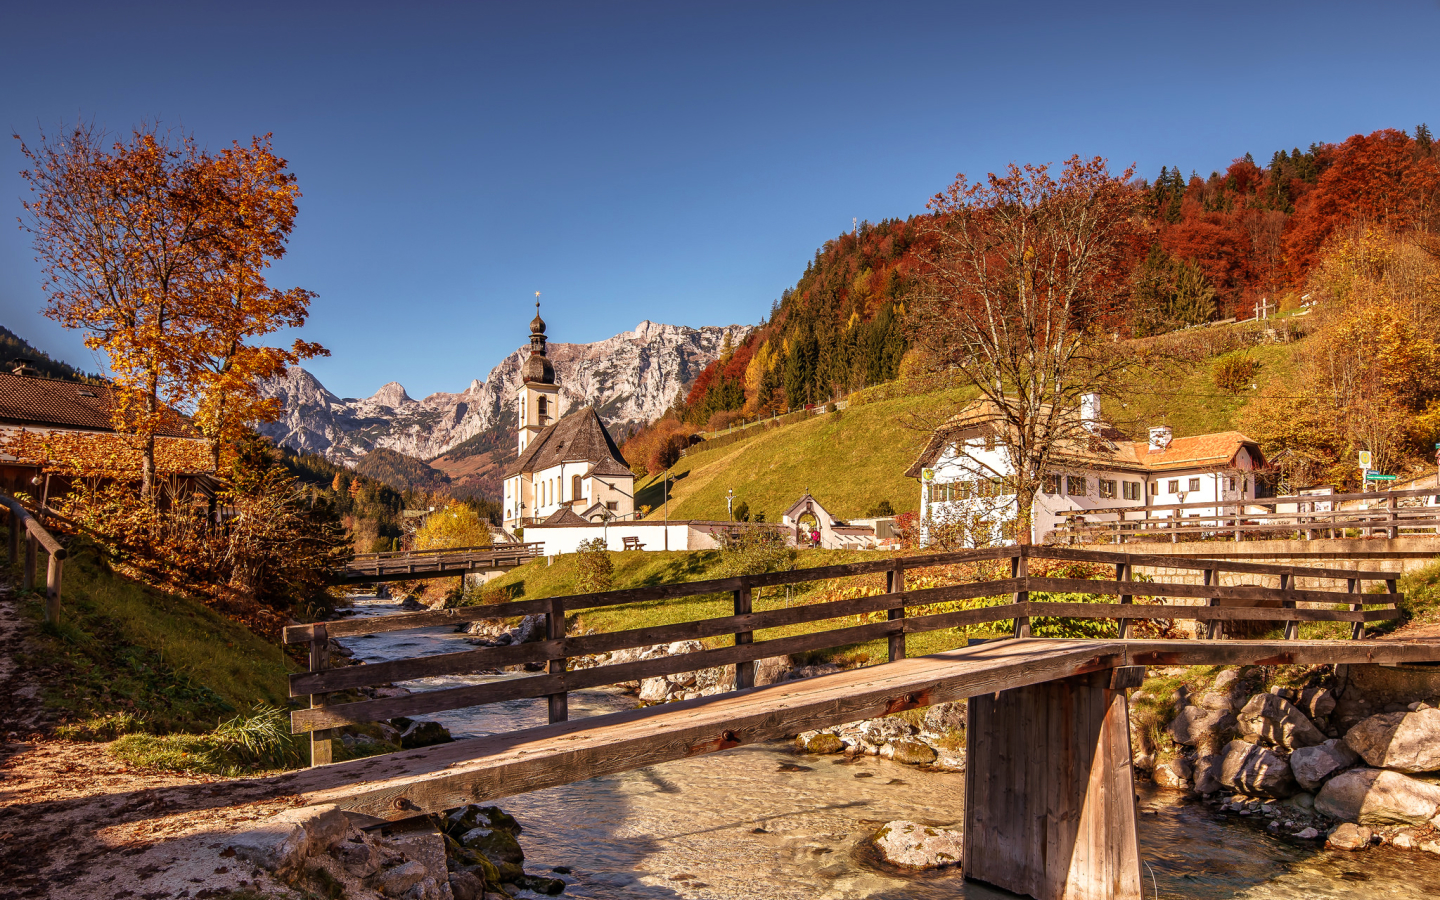 1440x900 Bavaria Germany Alps 1440x900 Wallpaper Hd Nature 4k Wallpapers Images Photos And Background